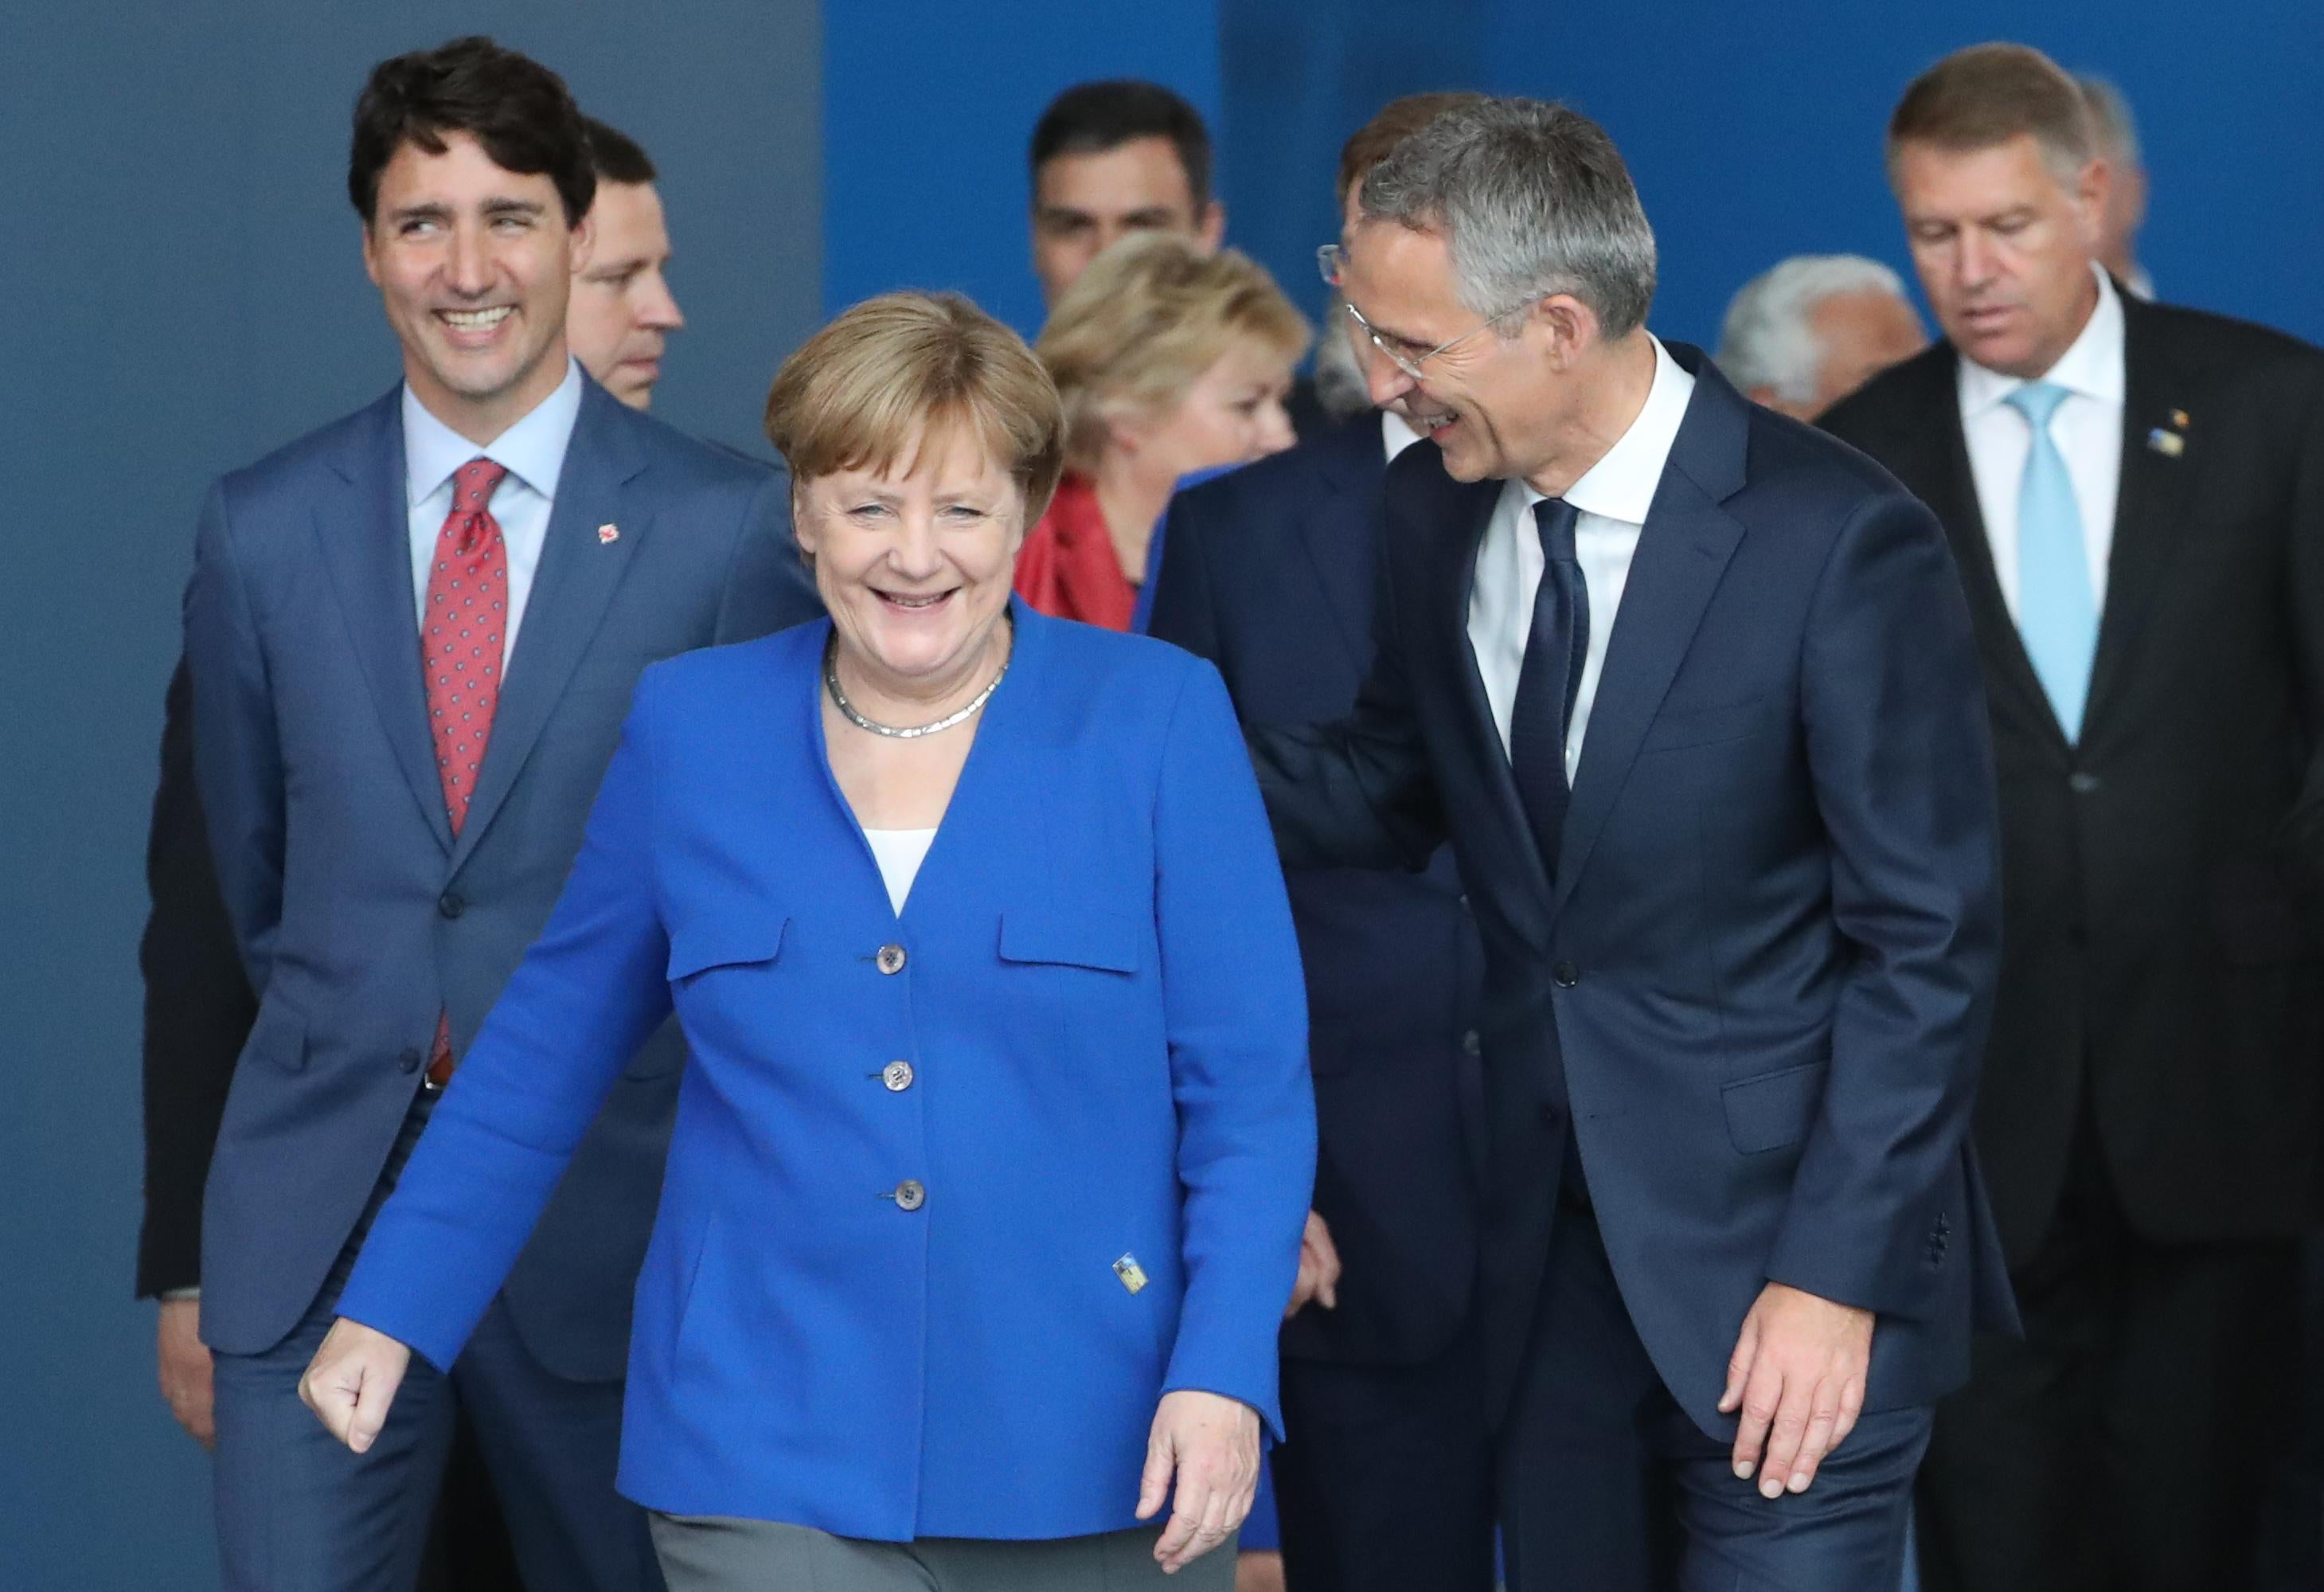 Angela Merkel and other world leaders walk toward the camera.